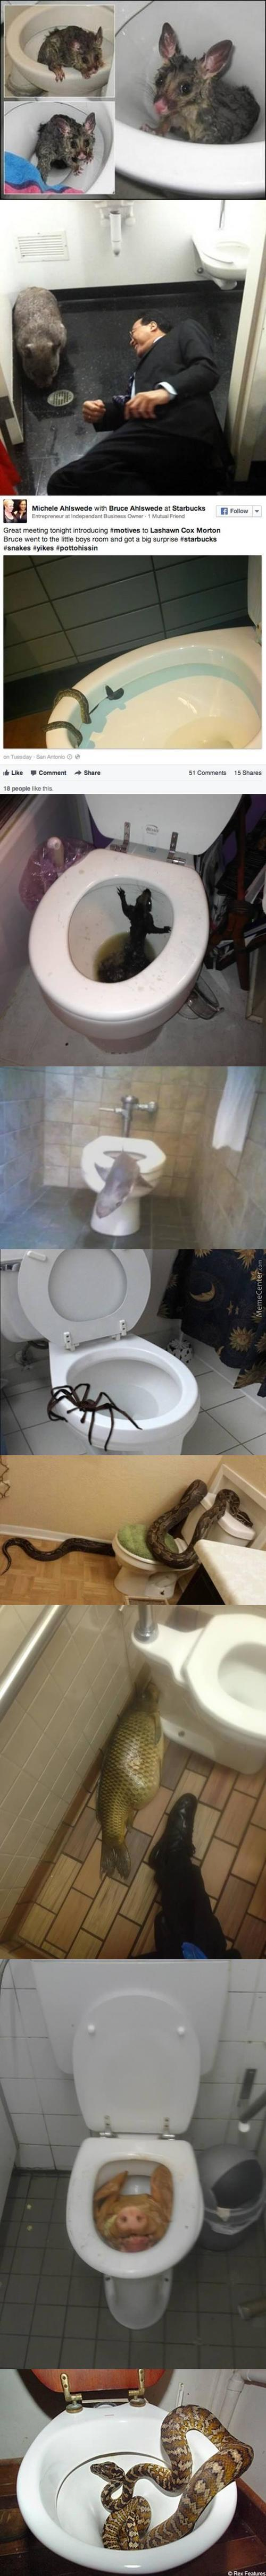 Here Are The 10 Most Insane Things People Ever Found In Their Toilets.